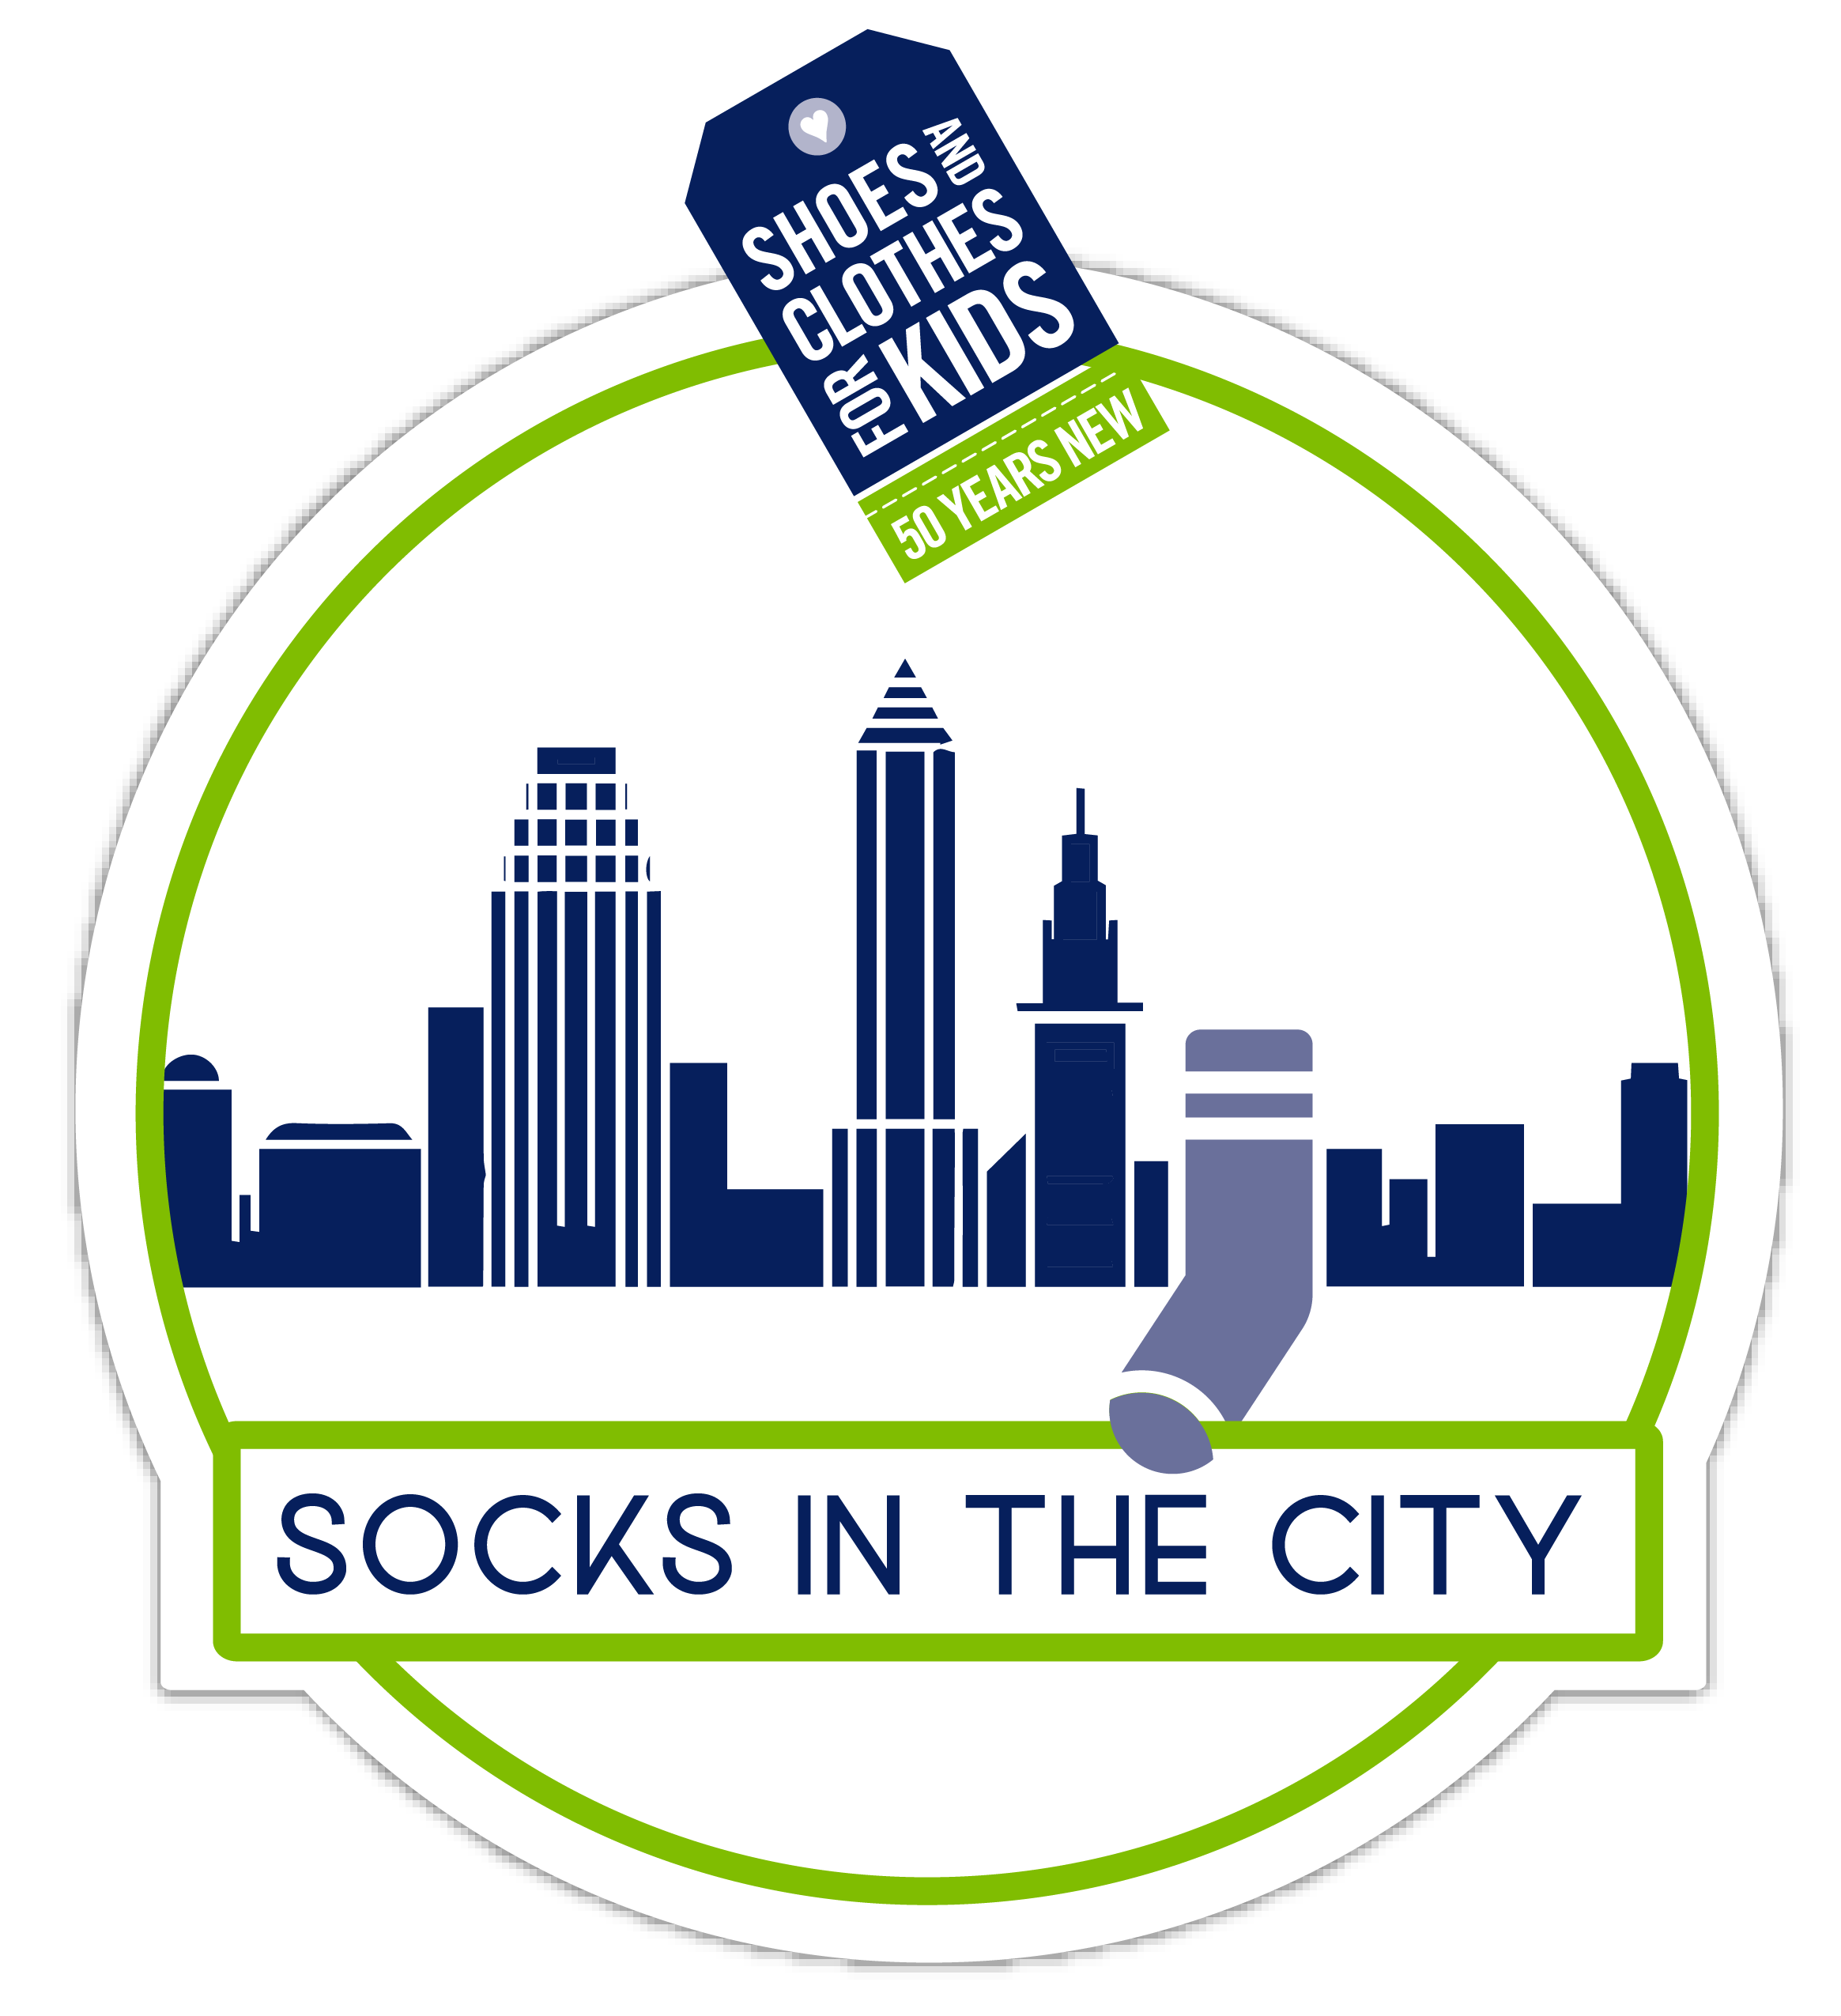 Socks in the City logo